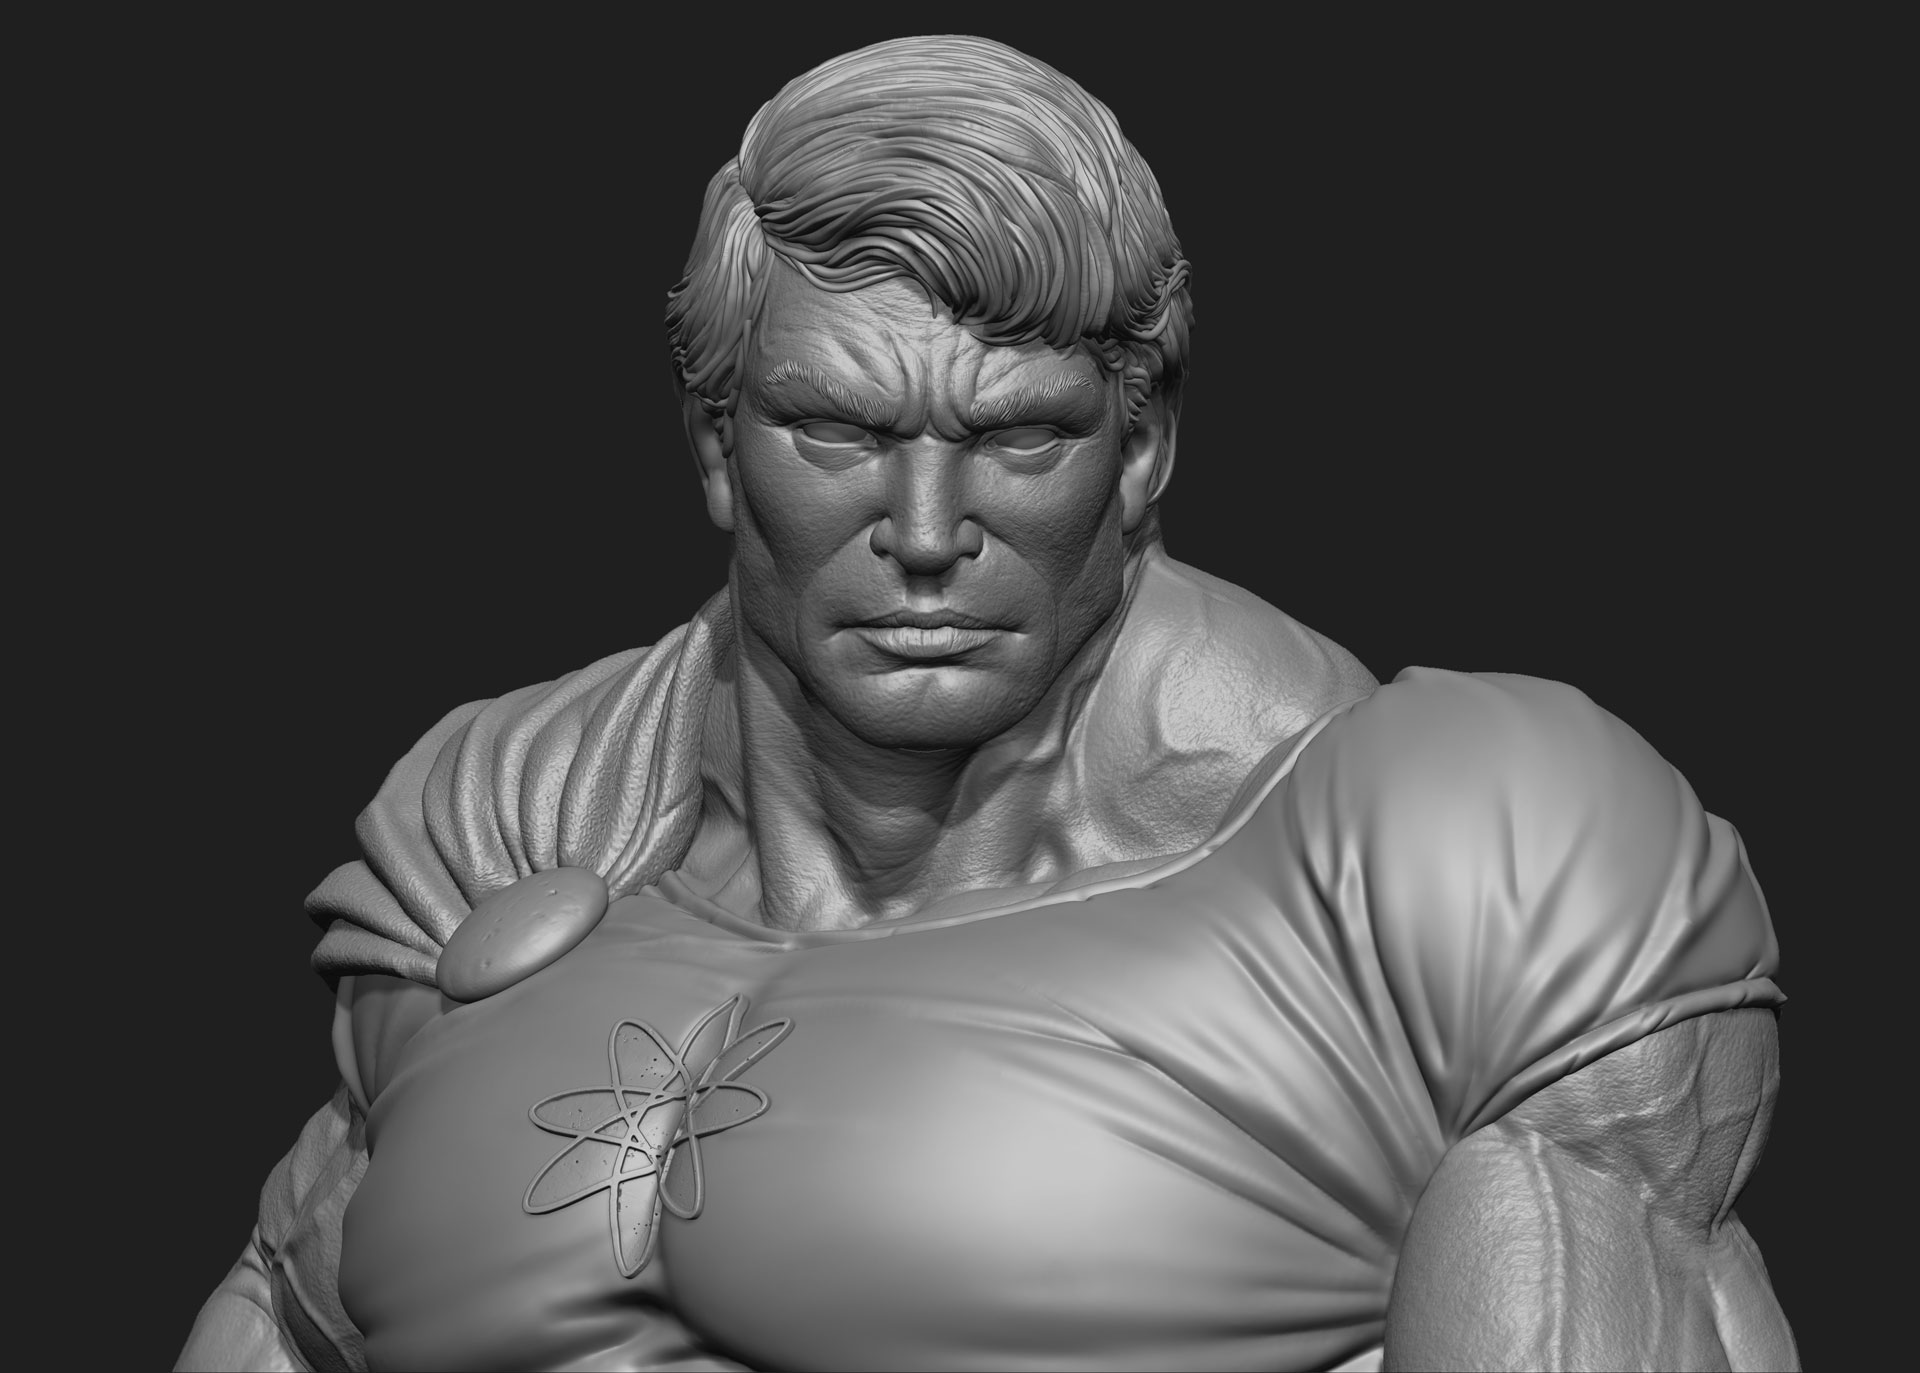 HyperionZbrushGray_11